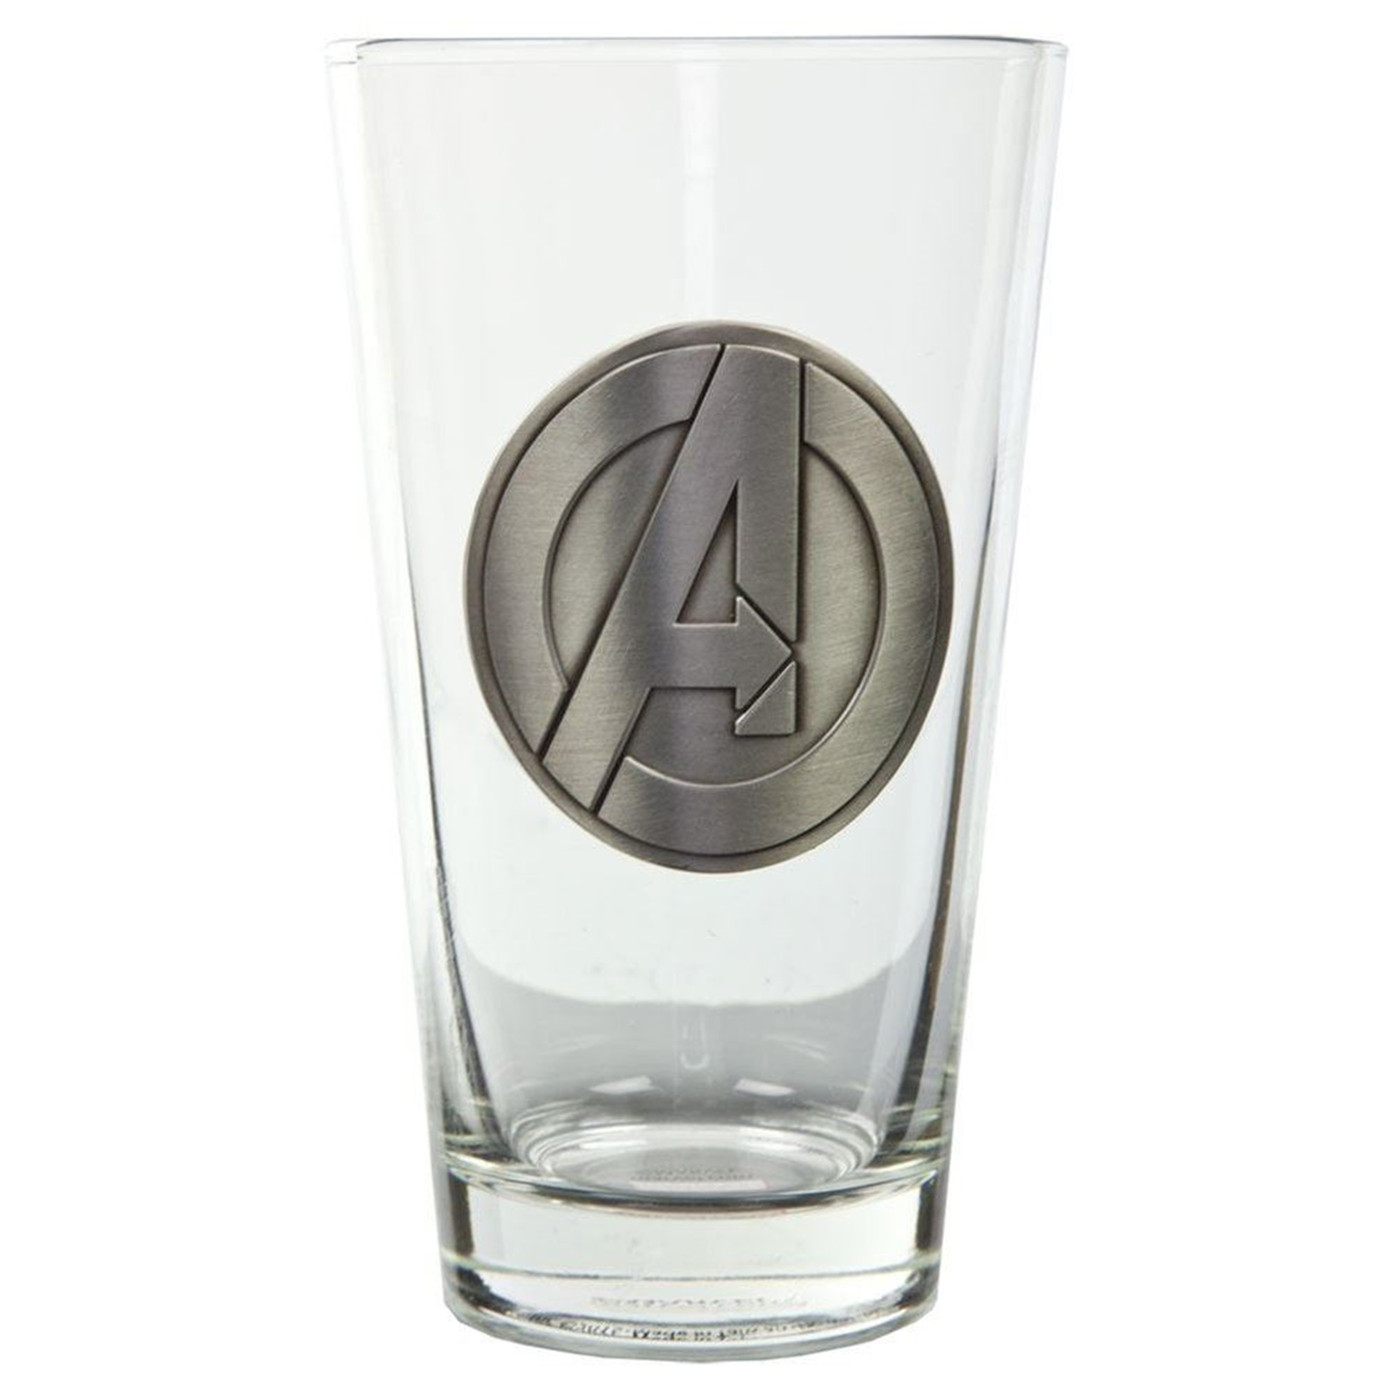 The Avengers Glas